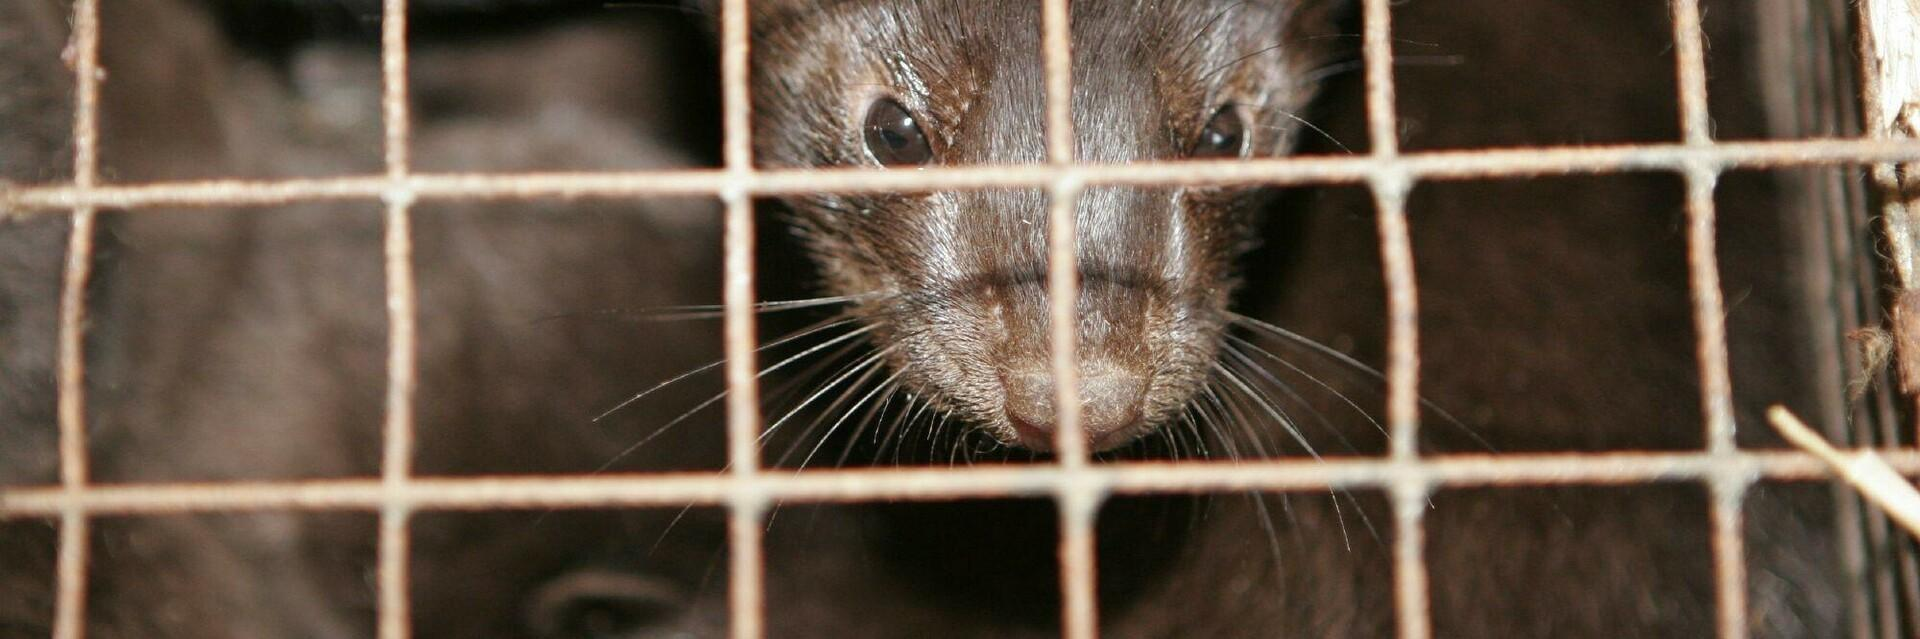 Mink in a small cage for fur